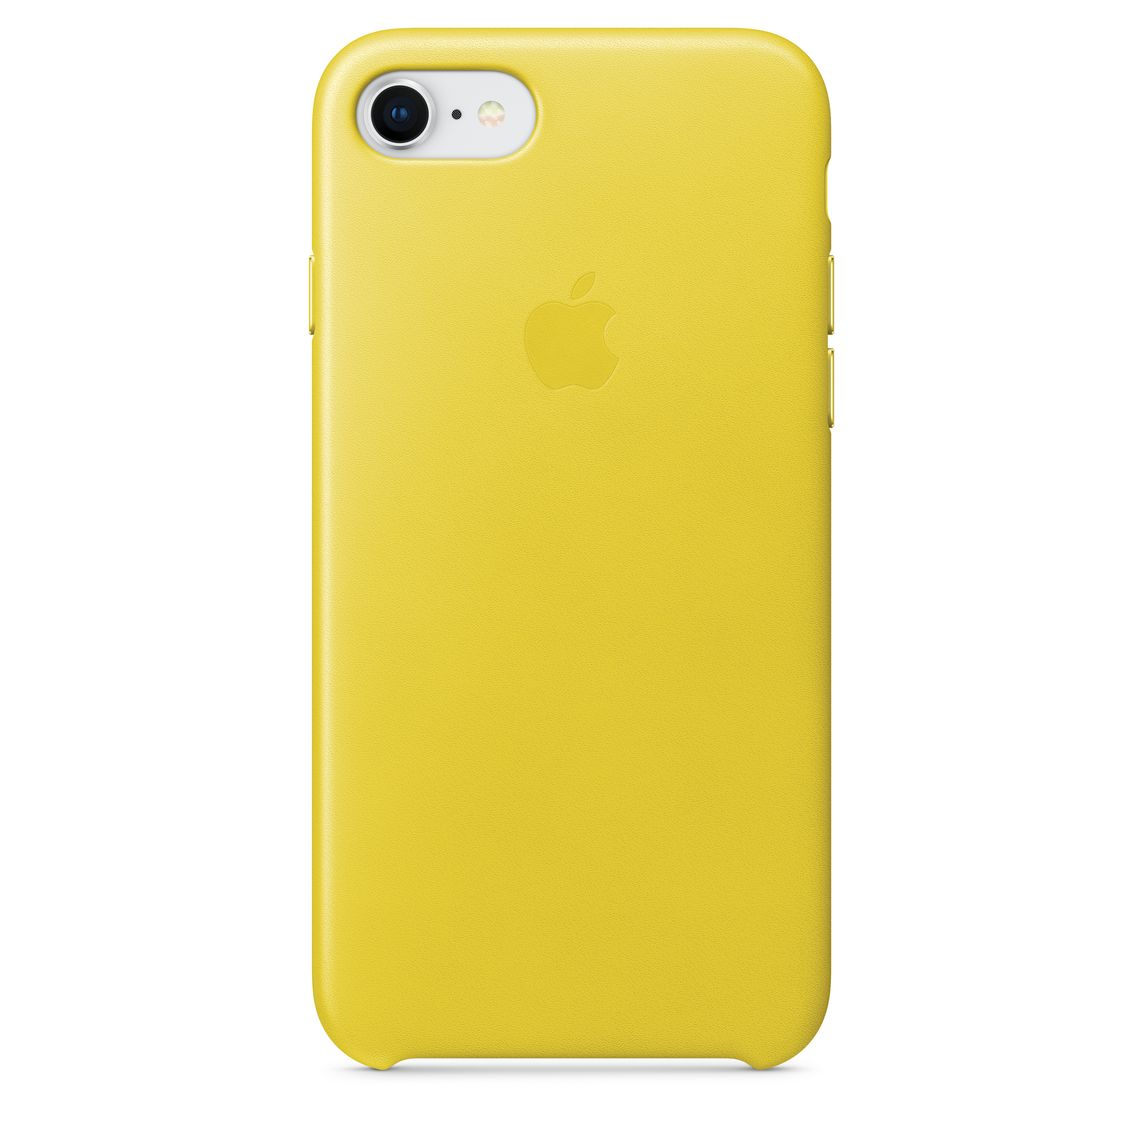 caecae35c7ca5 iPhone 8 / 7 Leather Case - Spring Yellow - Apple